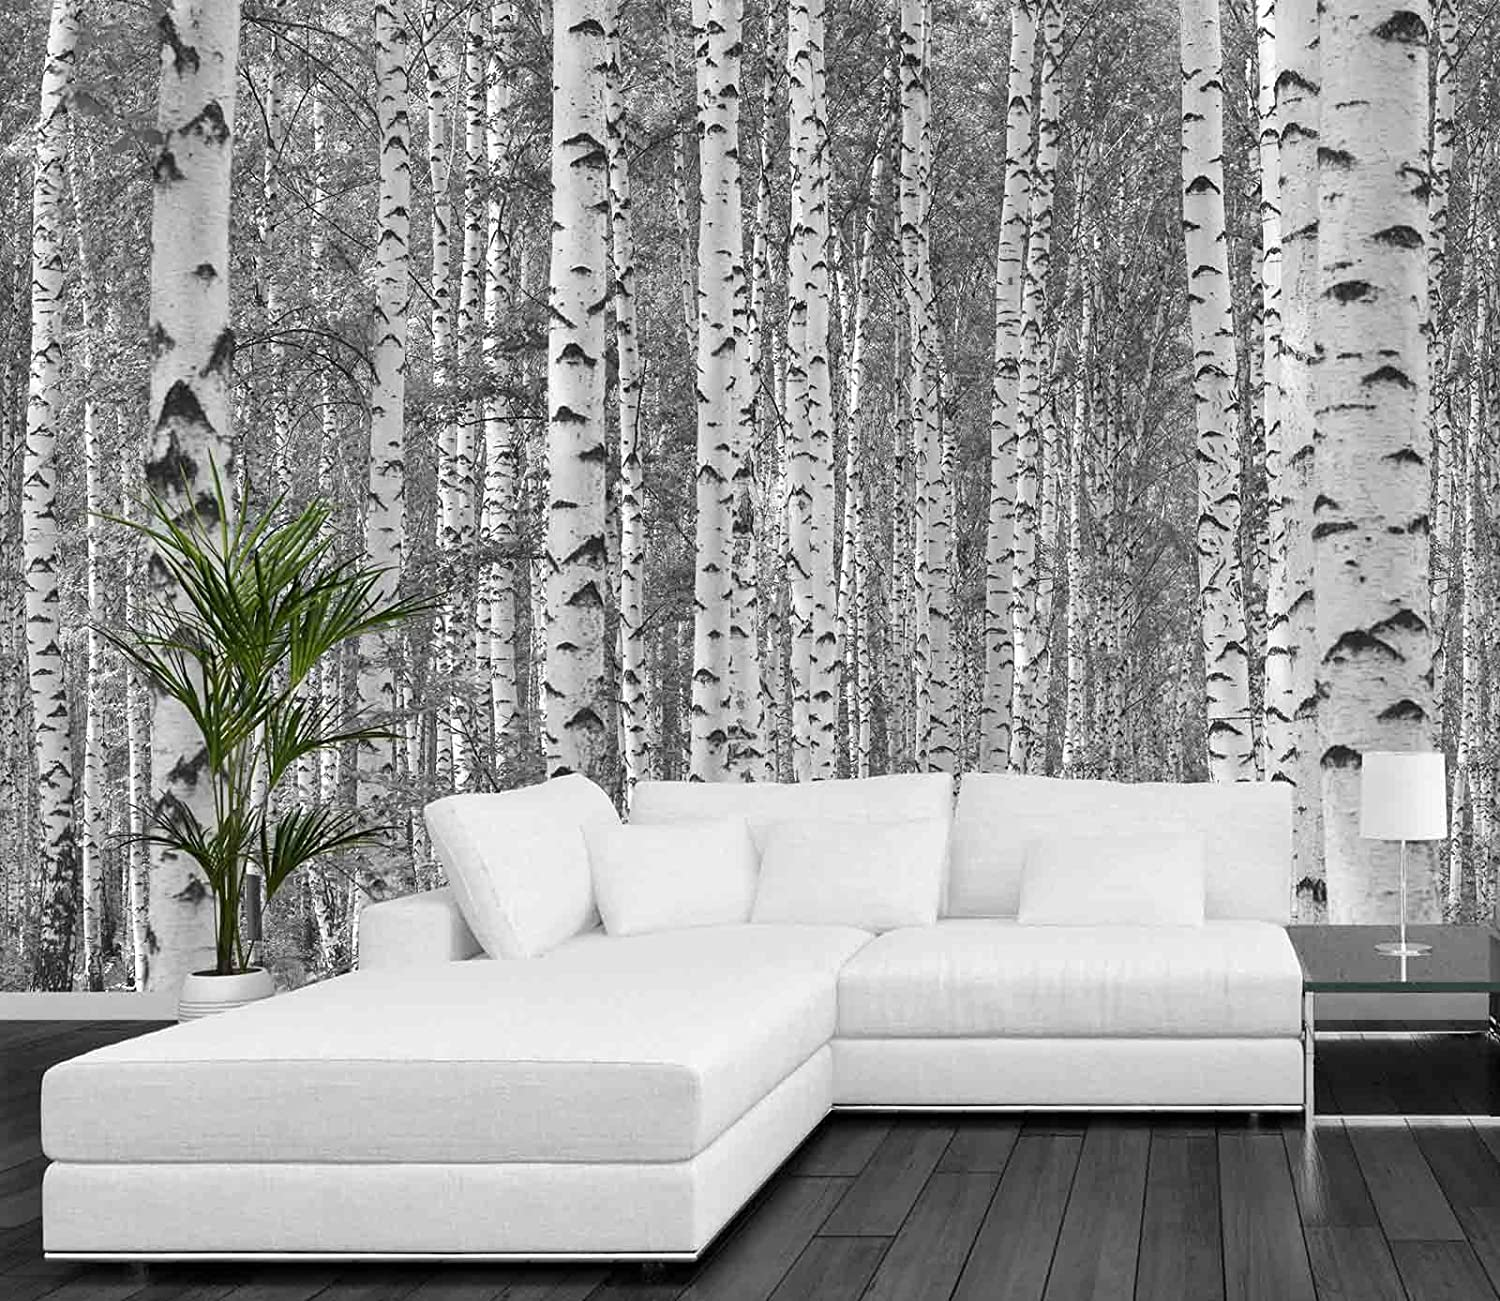 12 feet wide by 8 feet high prepasted robust wallpaper mural from prepasted robust wallpaper mural from a high resolution black and white photo of birch trees all our murals are easy to install remove and reuse hang